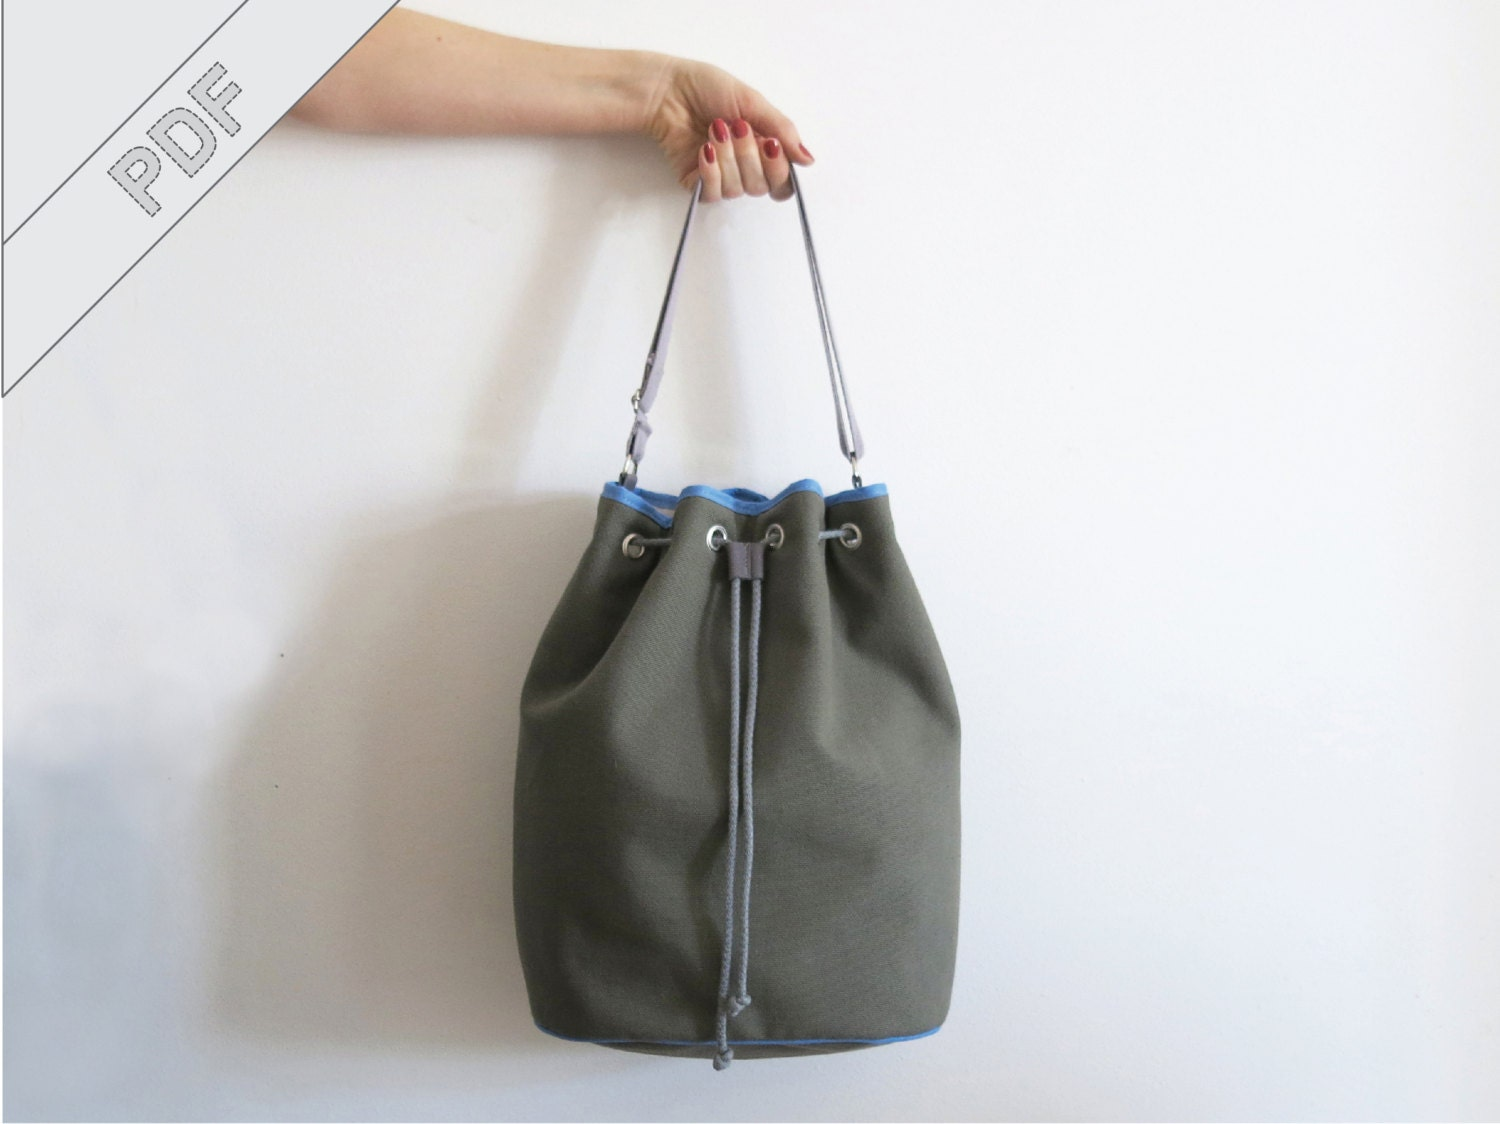 sewing tutorial with sewing pattern for a bucket bag ... - photo#41